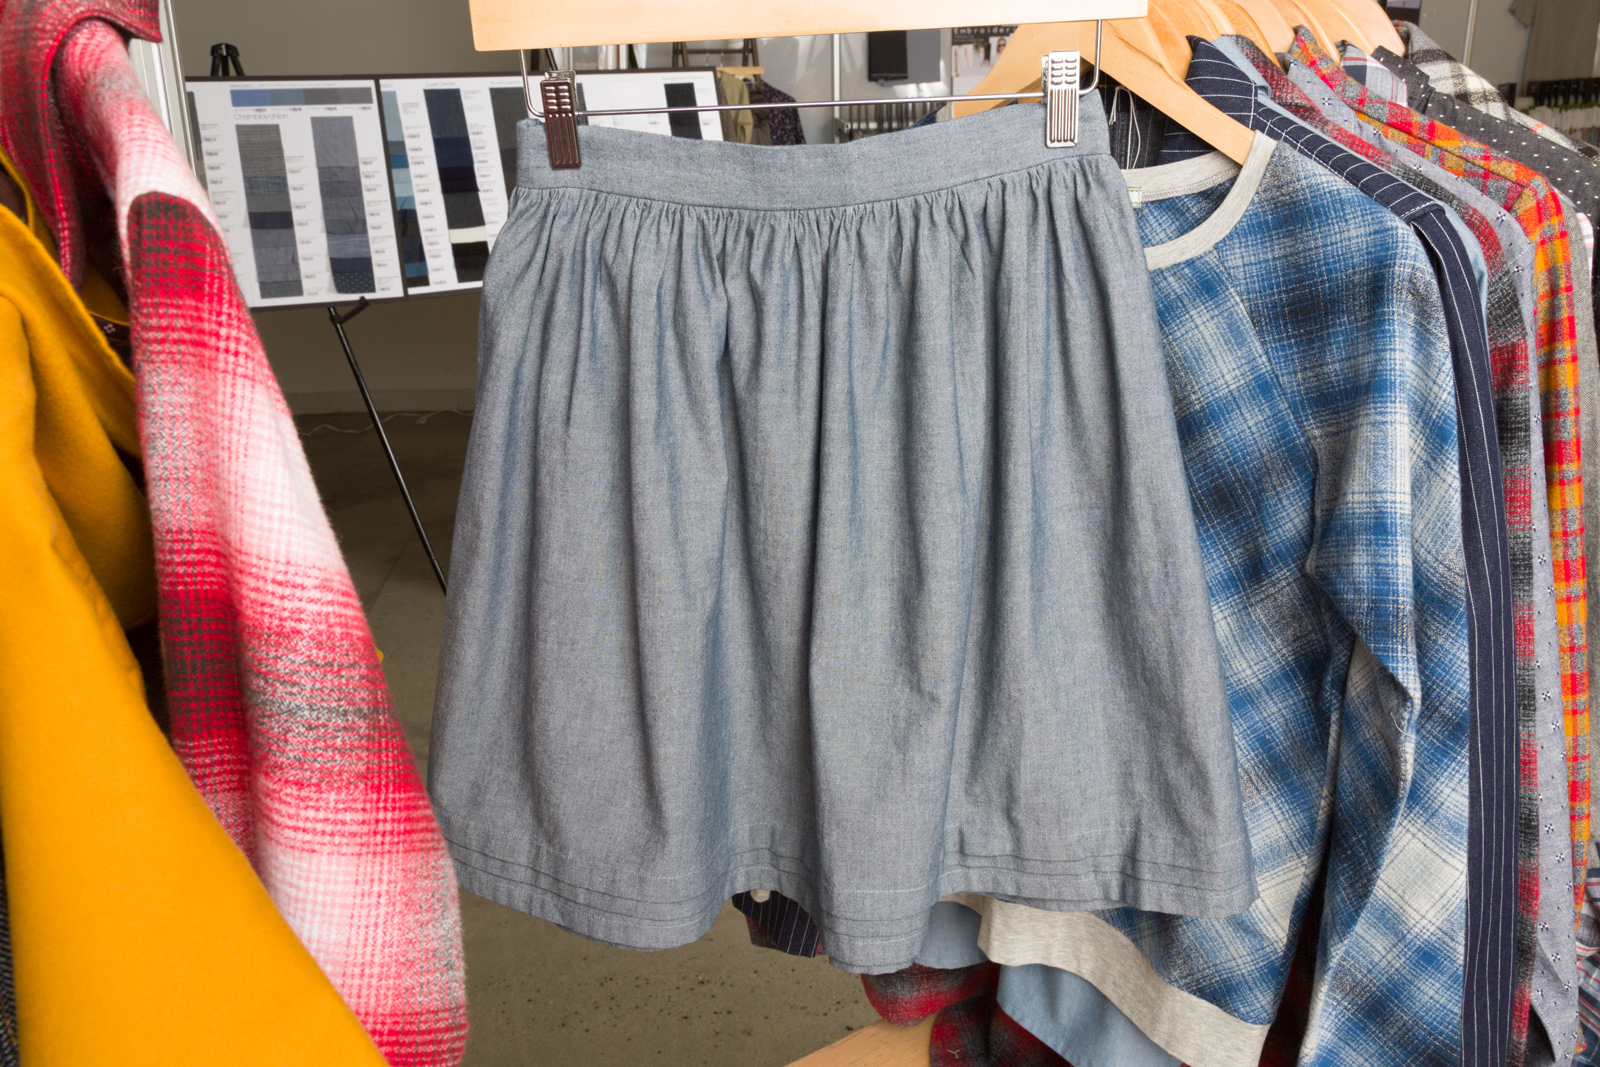 Paris Skirt   by   Nothing too Fancy  , made by   Christine Haynes,   , featuring   Chambray Union      Linden Sweatshirt   by   Grainline Studio ,  made by   Andrea Taddicken  , featuring     Mammoth Flannel .